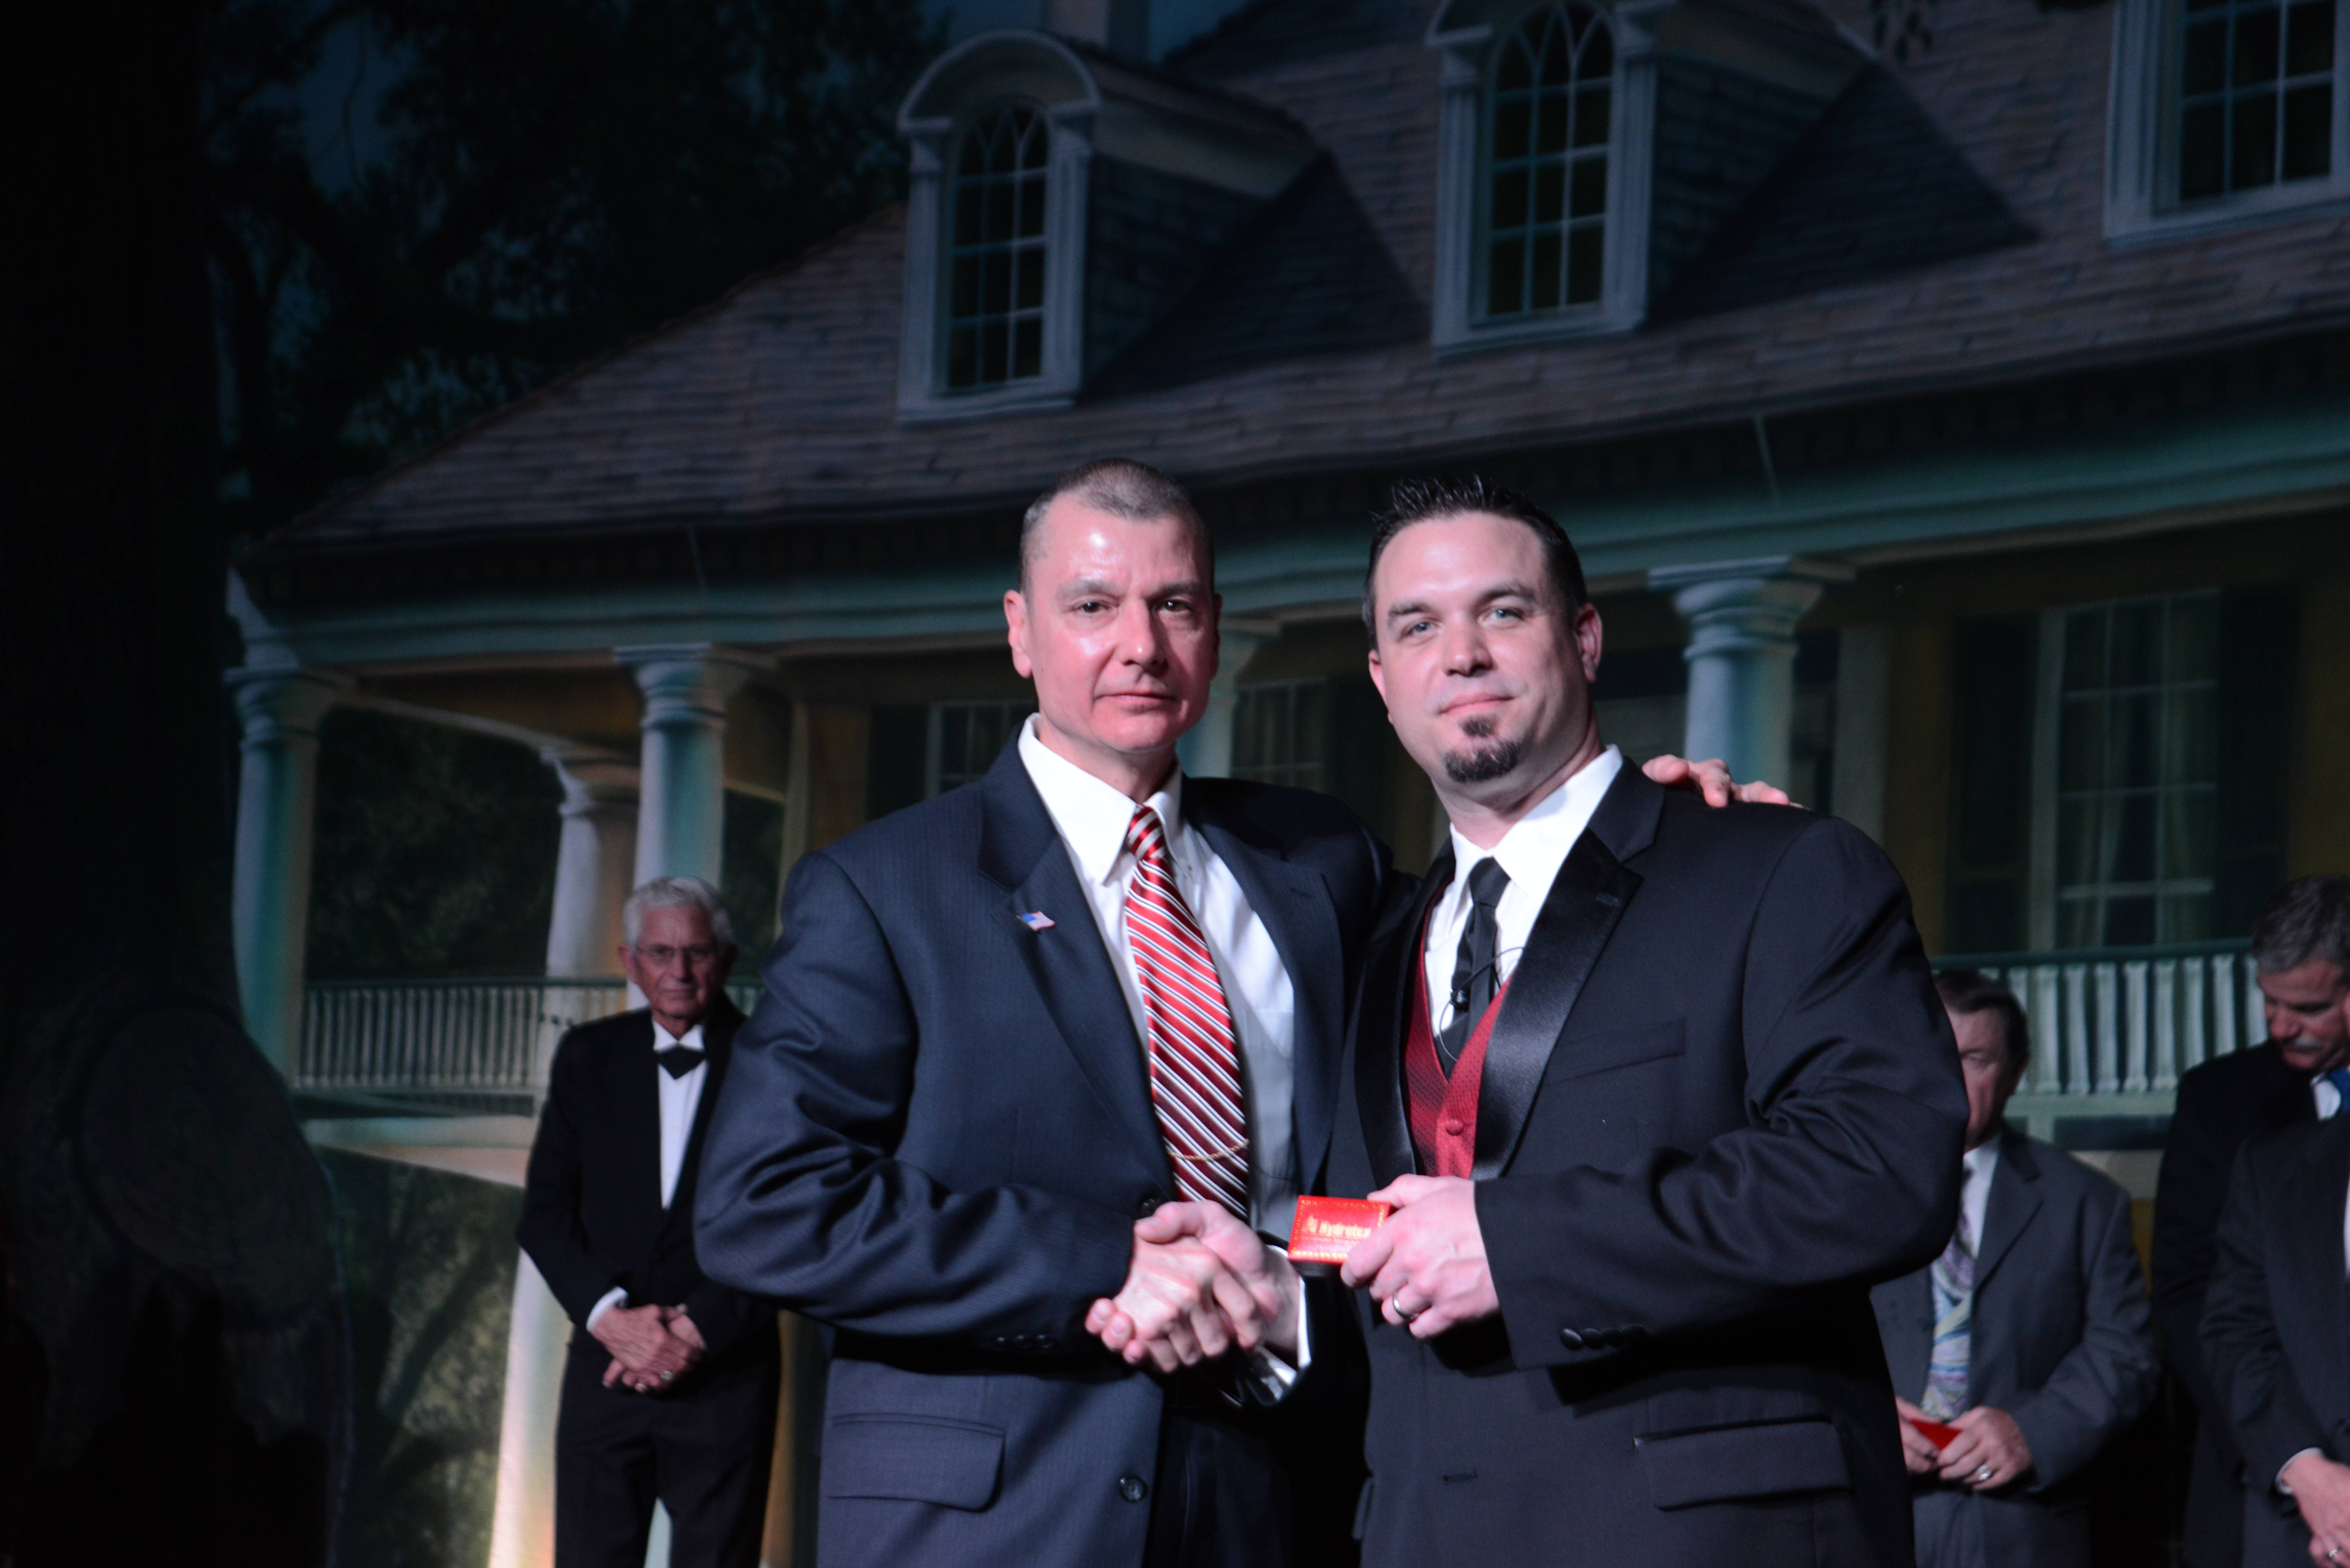 Photo taken at Hydrotex Awards Night in Dallas, Texas (Joe Stetina, pictured left)